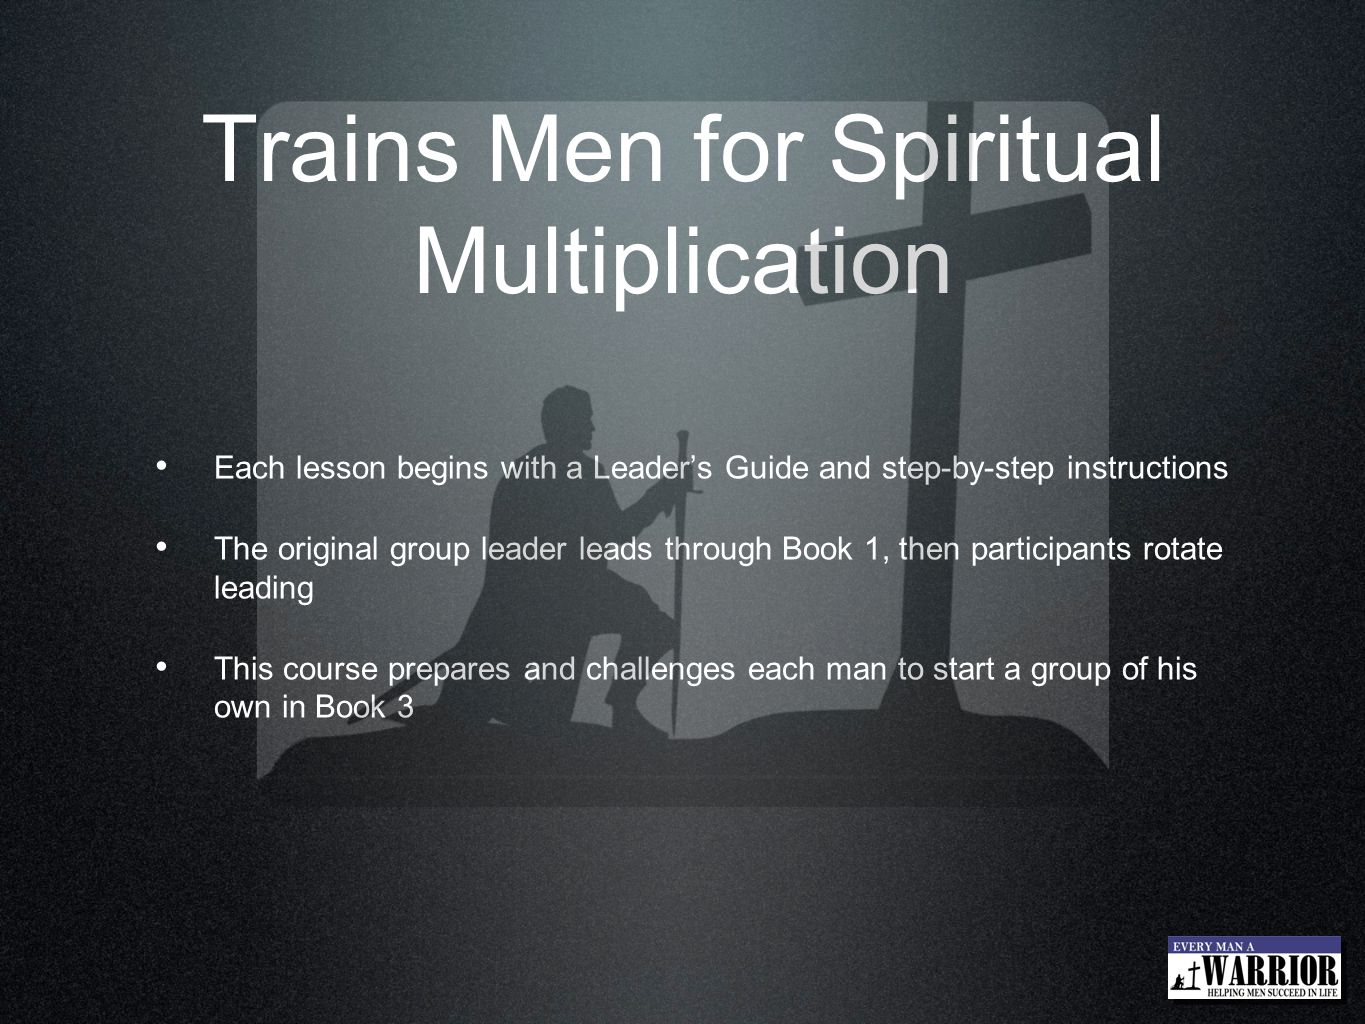 Trains Men for Spiritual Multiplication